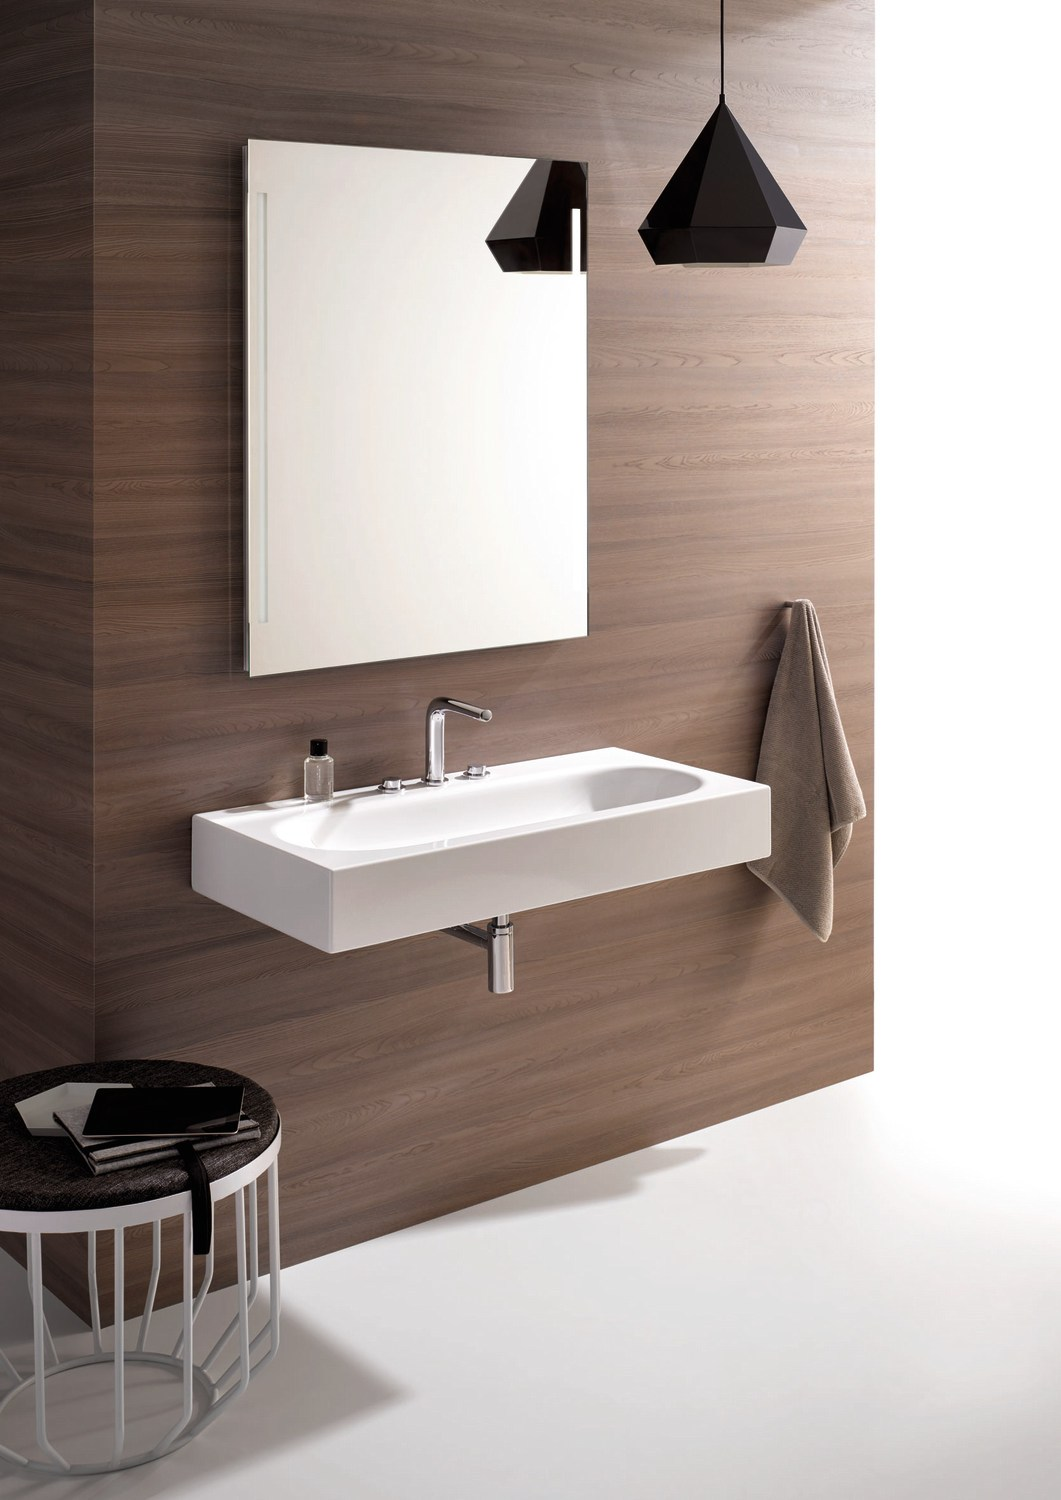 bettecomodo lavabo sospeso by bette design tesseraux partner. Black Bedroom Furniture Sets. Home Design Ideas